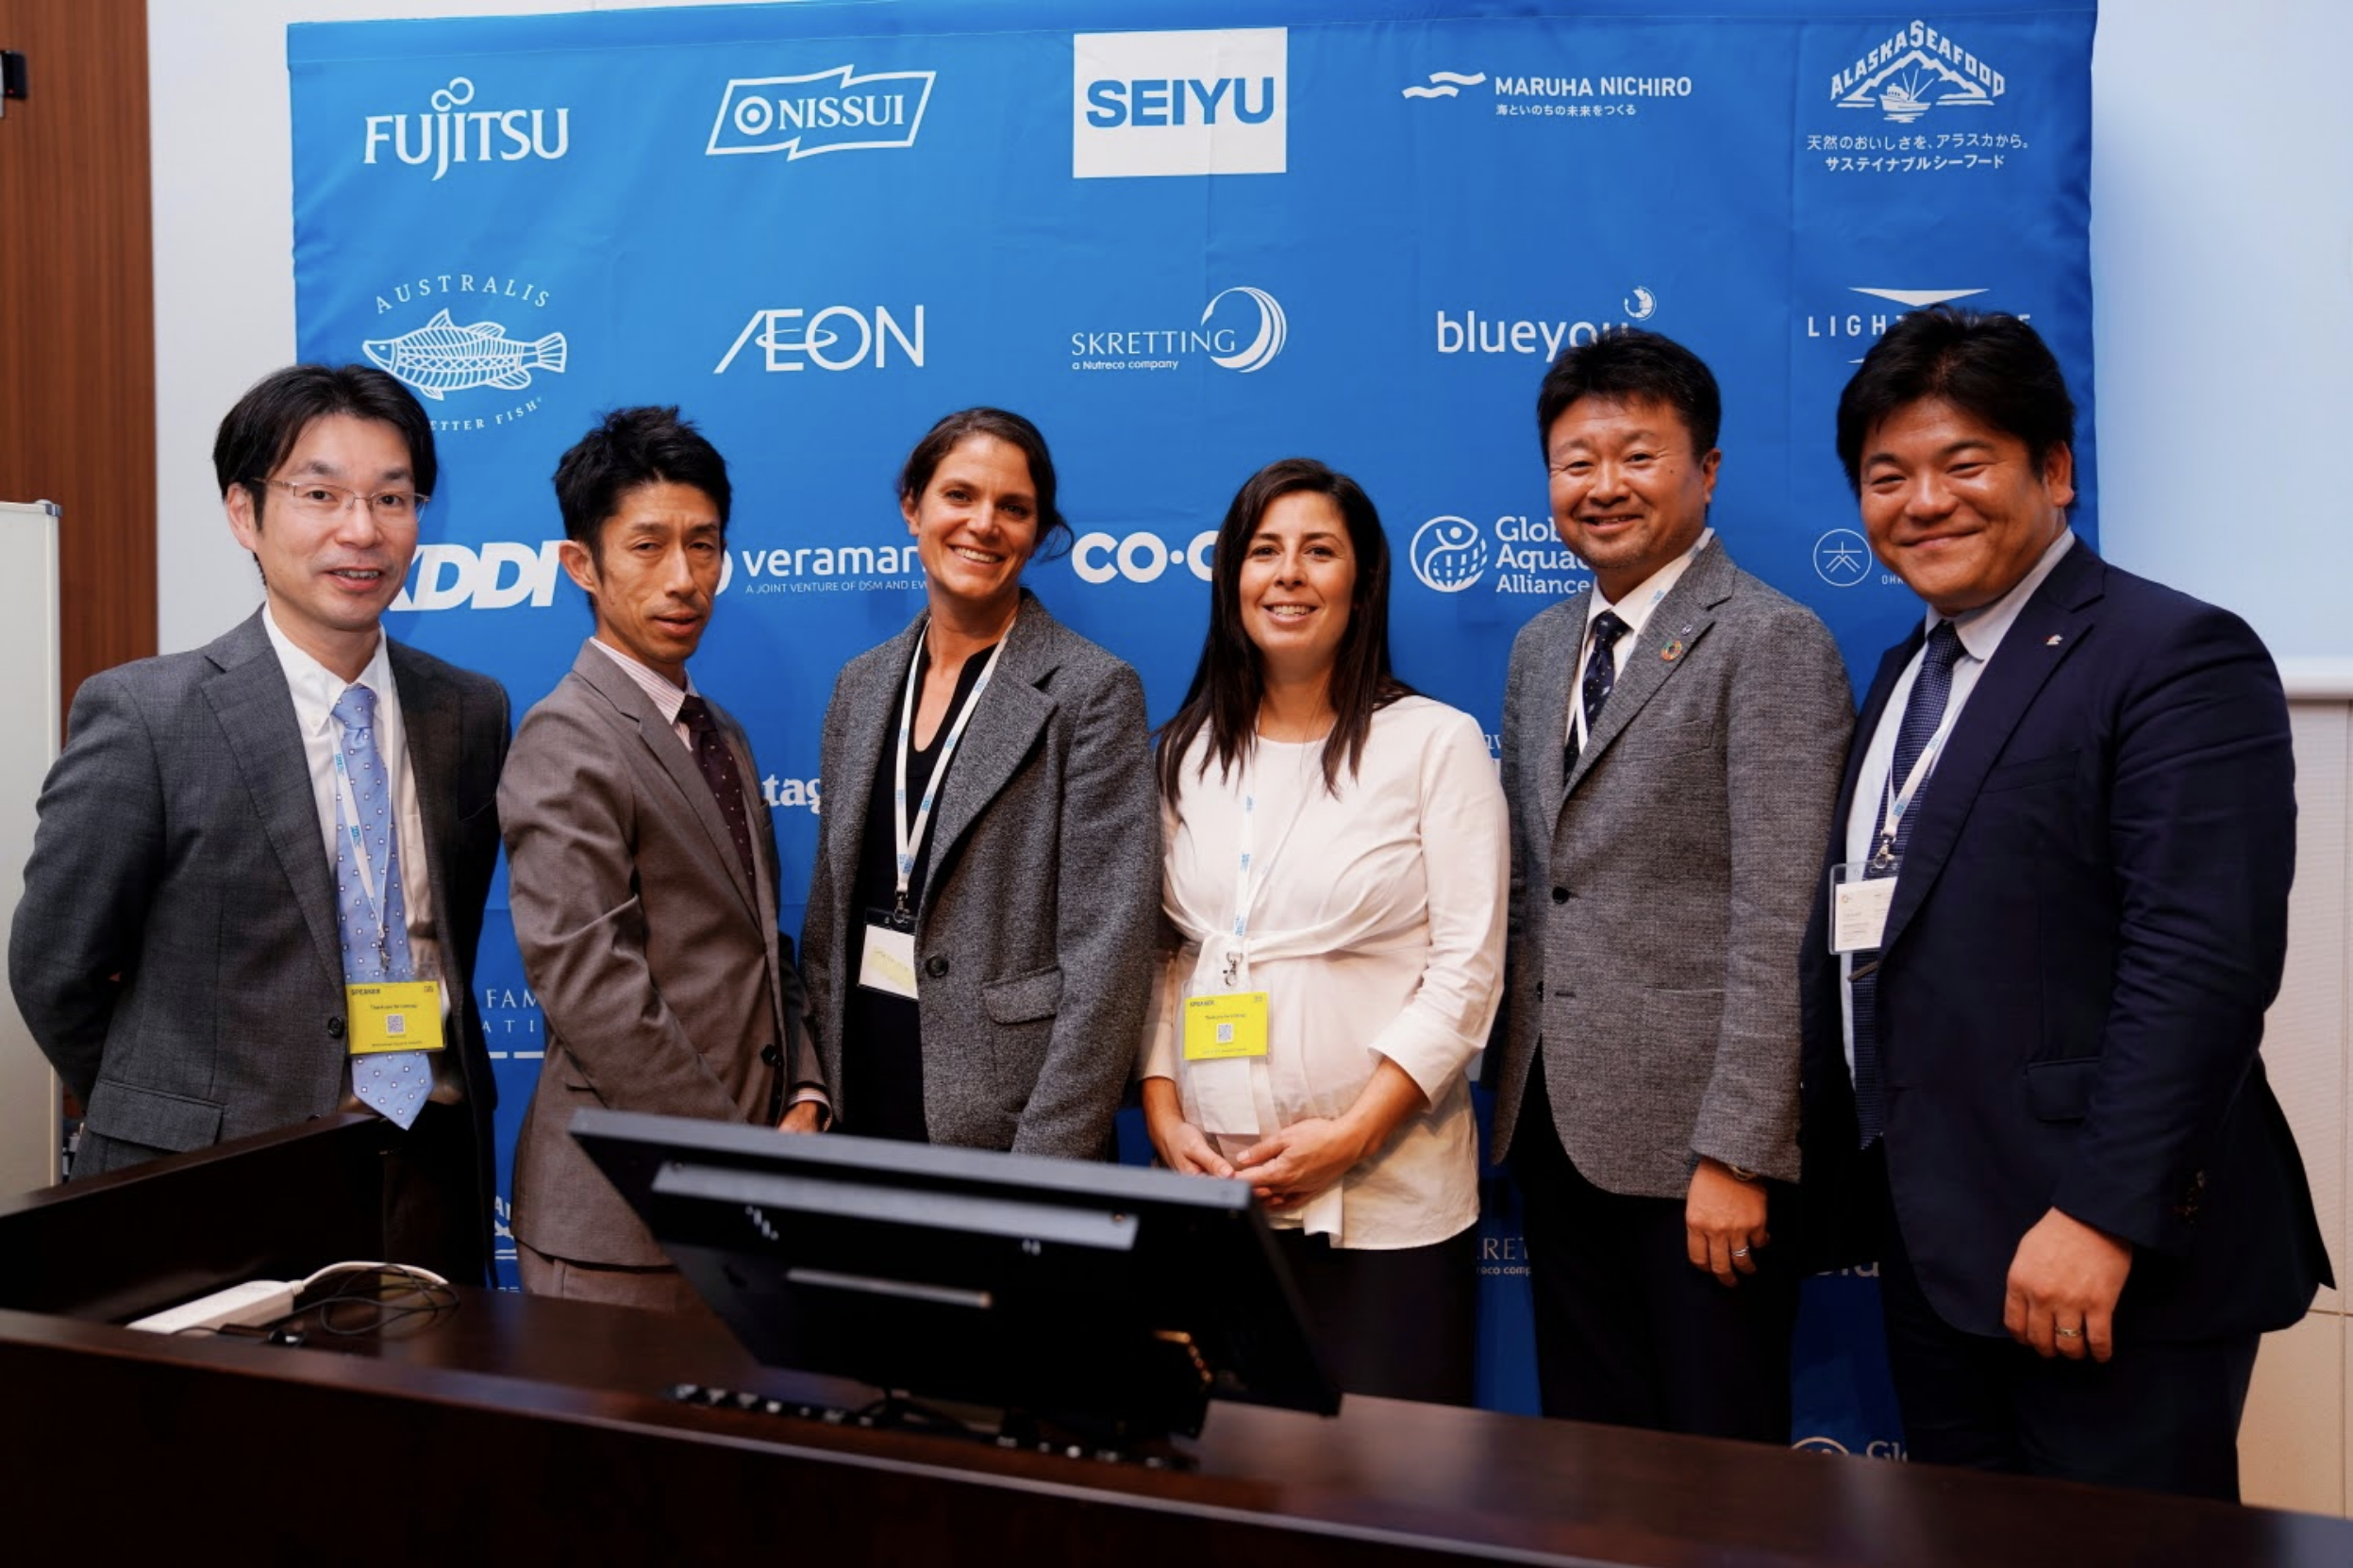 Panelists at the recent Tokyo Sustainable Seafood Symposium last November 2019, from left: Jun Sakai (Food Marketing Research and Information Center), Yukihiro Misawa (WWF Japan), Ashley Greenley (FishWise), Marta Marrero Martín (TNC), Sotaro Usui (CEO Usufukuhonten co.,ltd.), Wakao Hanaoka (Seafood Legacy).